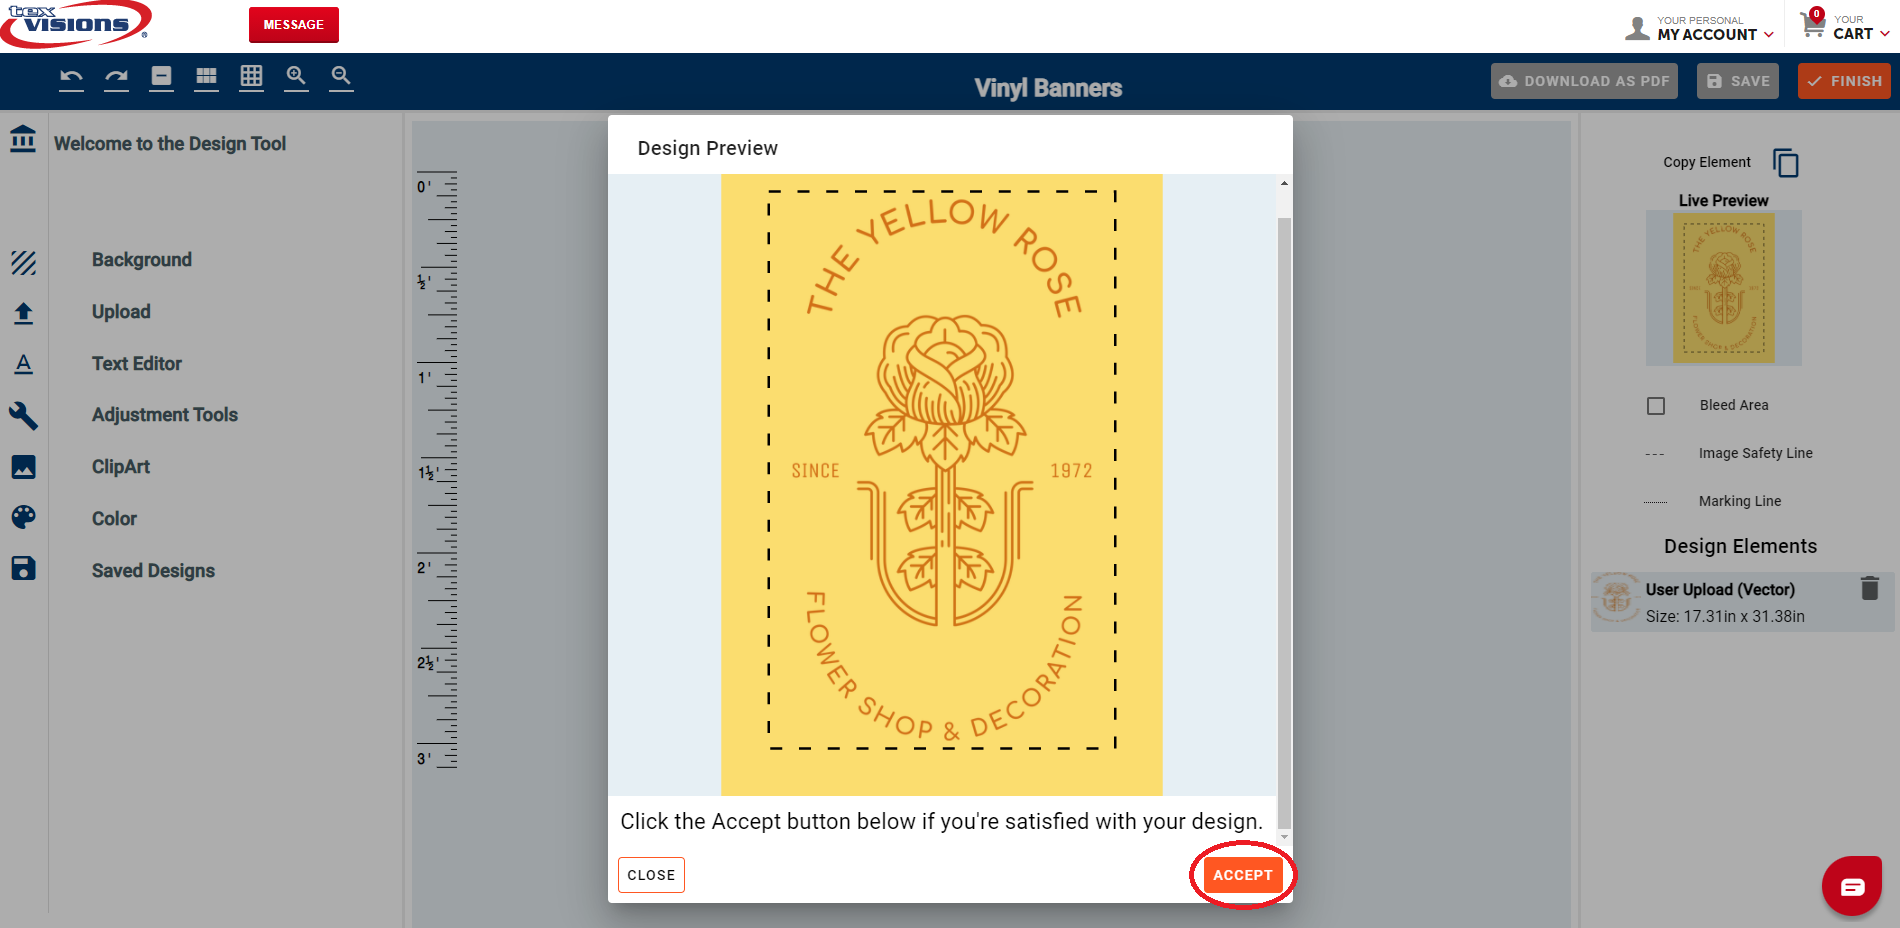 Step 2: View Your Finished Design